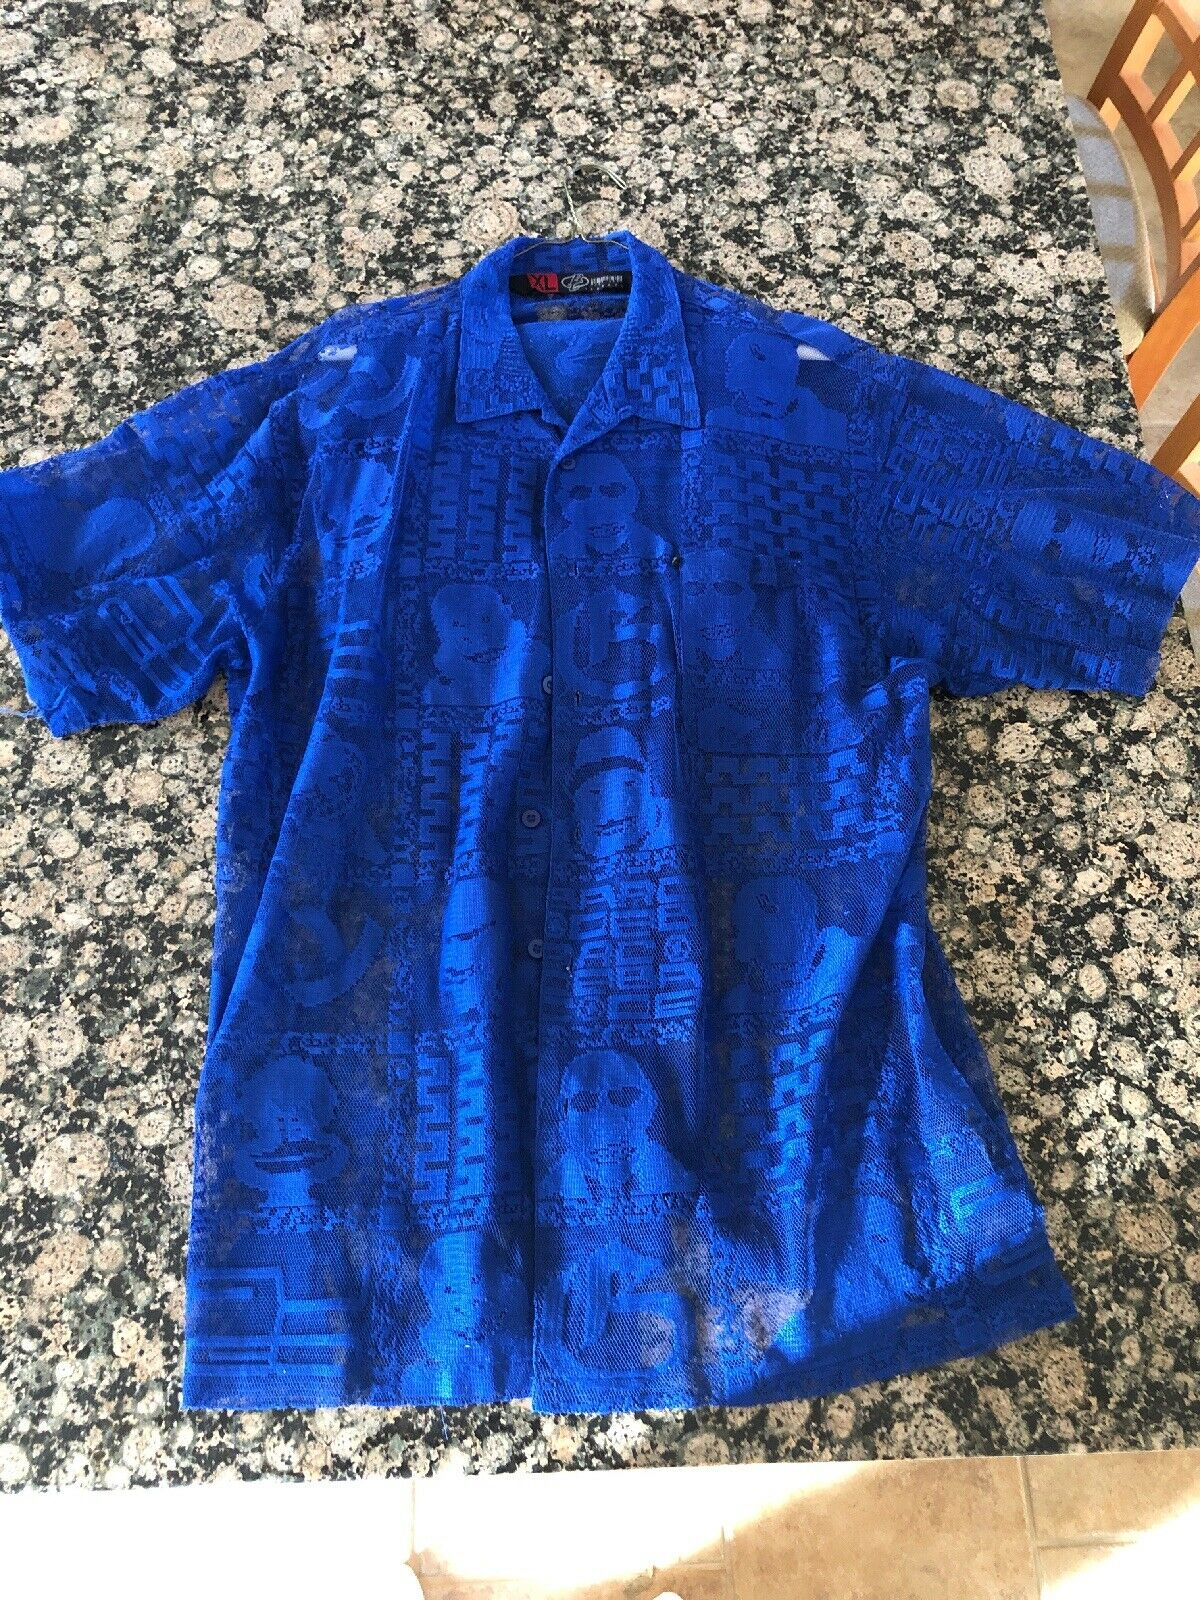 90s Unisex BC Barcode Clothing Blue S/S Shirt And Matching Shorts XL Awesome Set